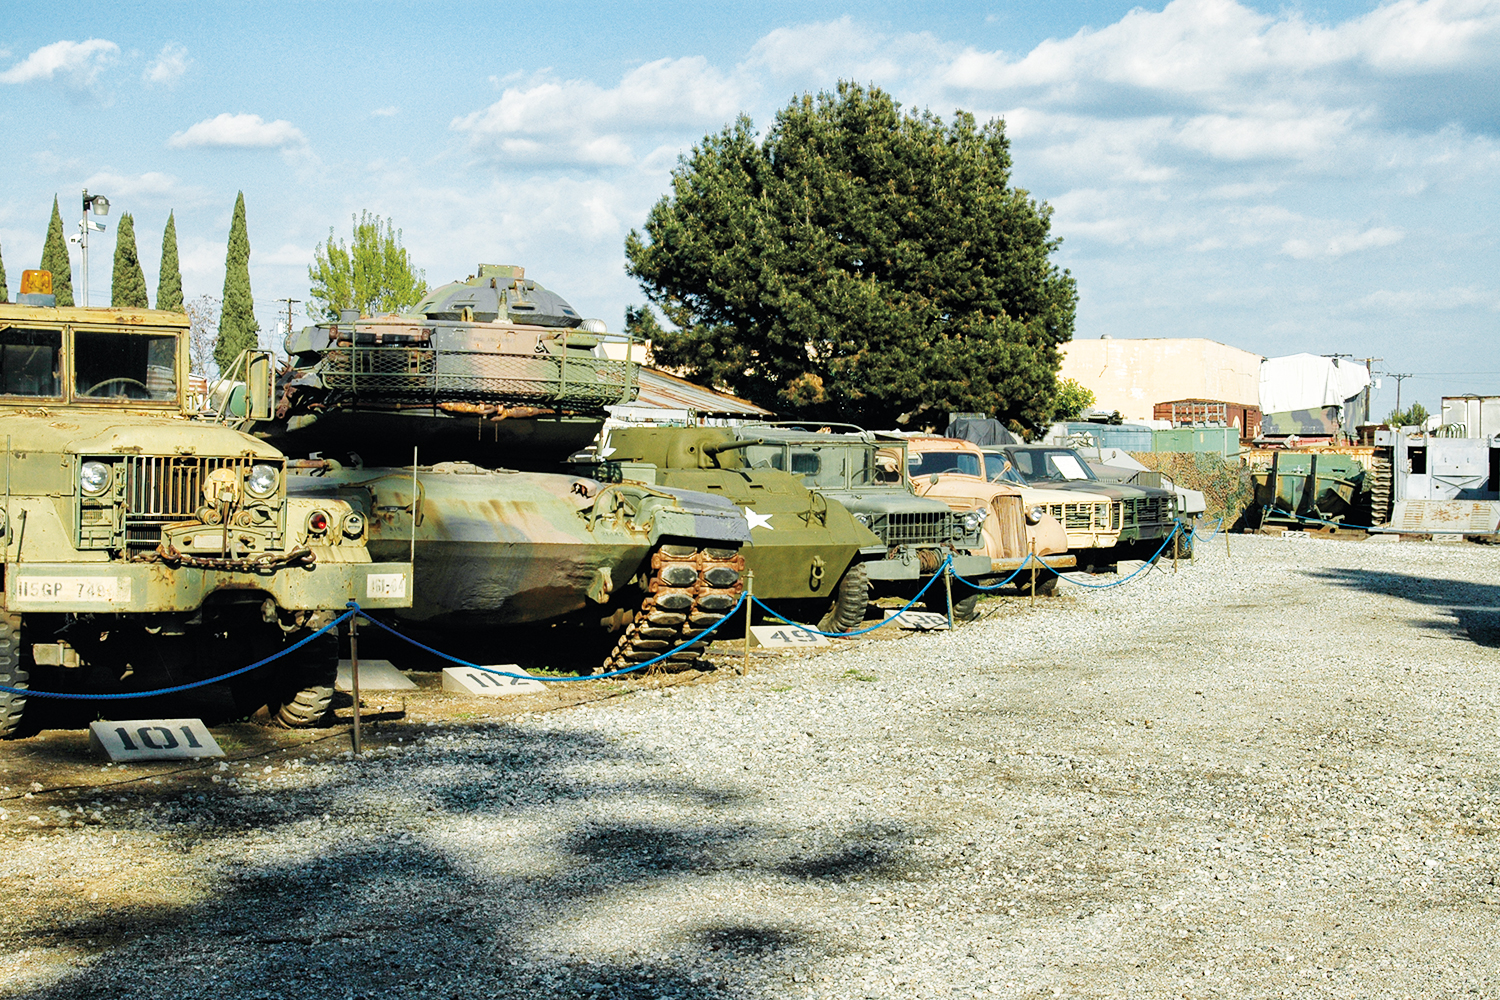 The American Military Museum – Preserving our American Military ...